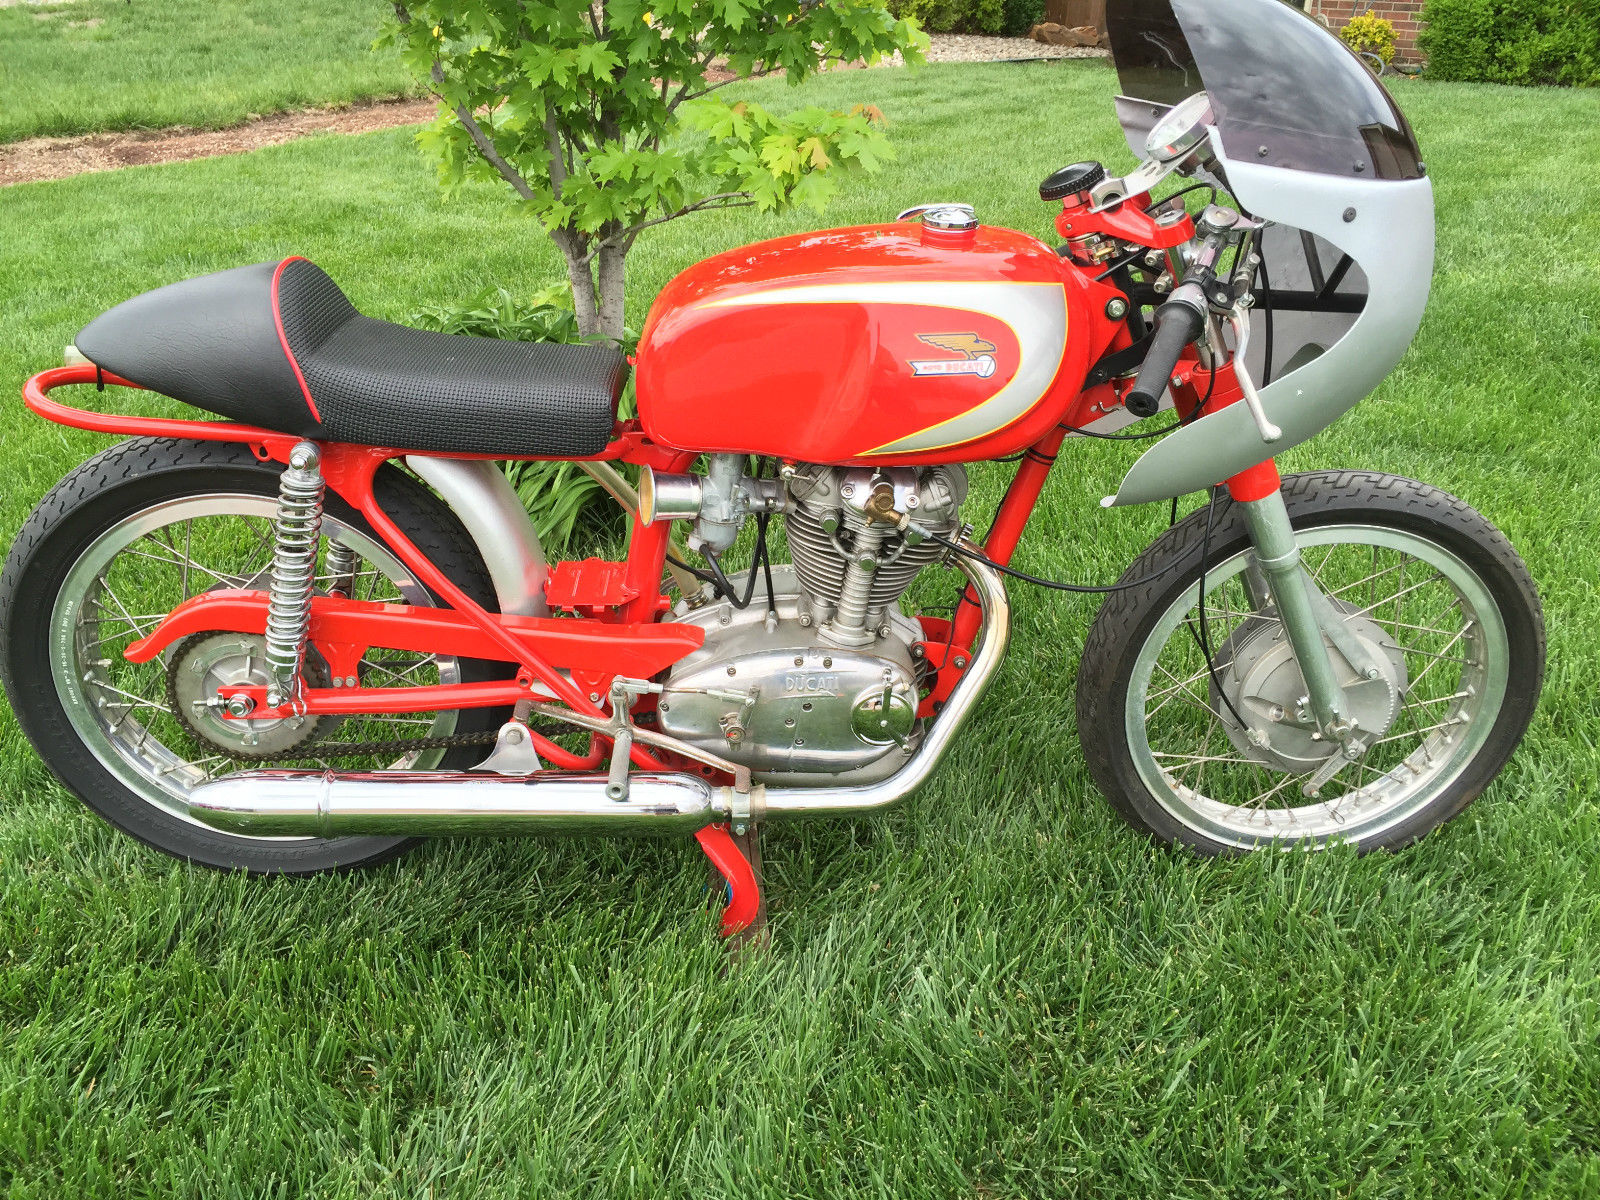 Ducati 250 Mark 3 1973 images #78592